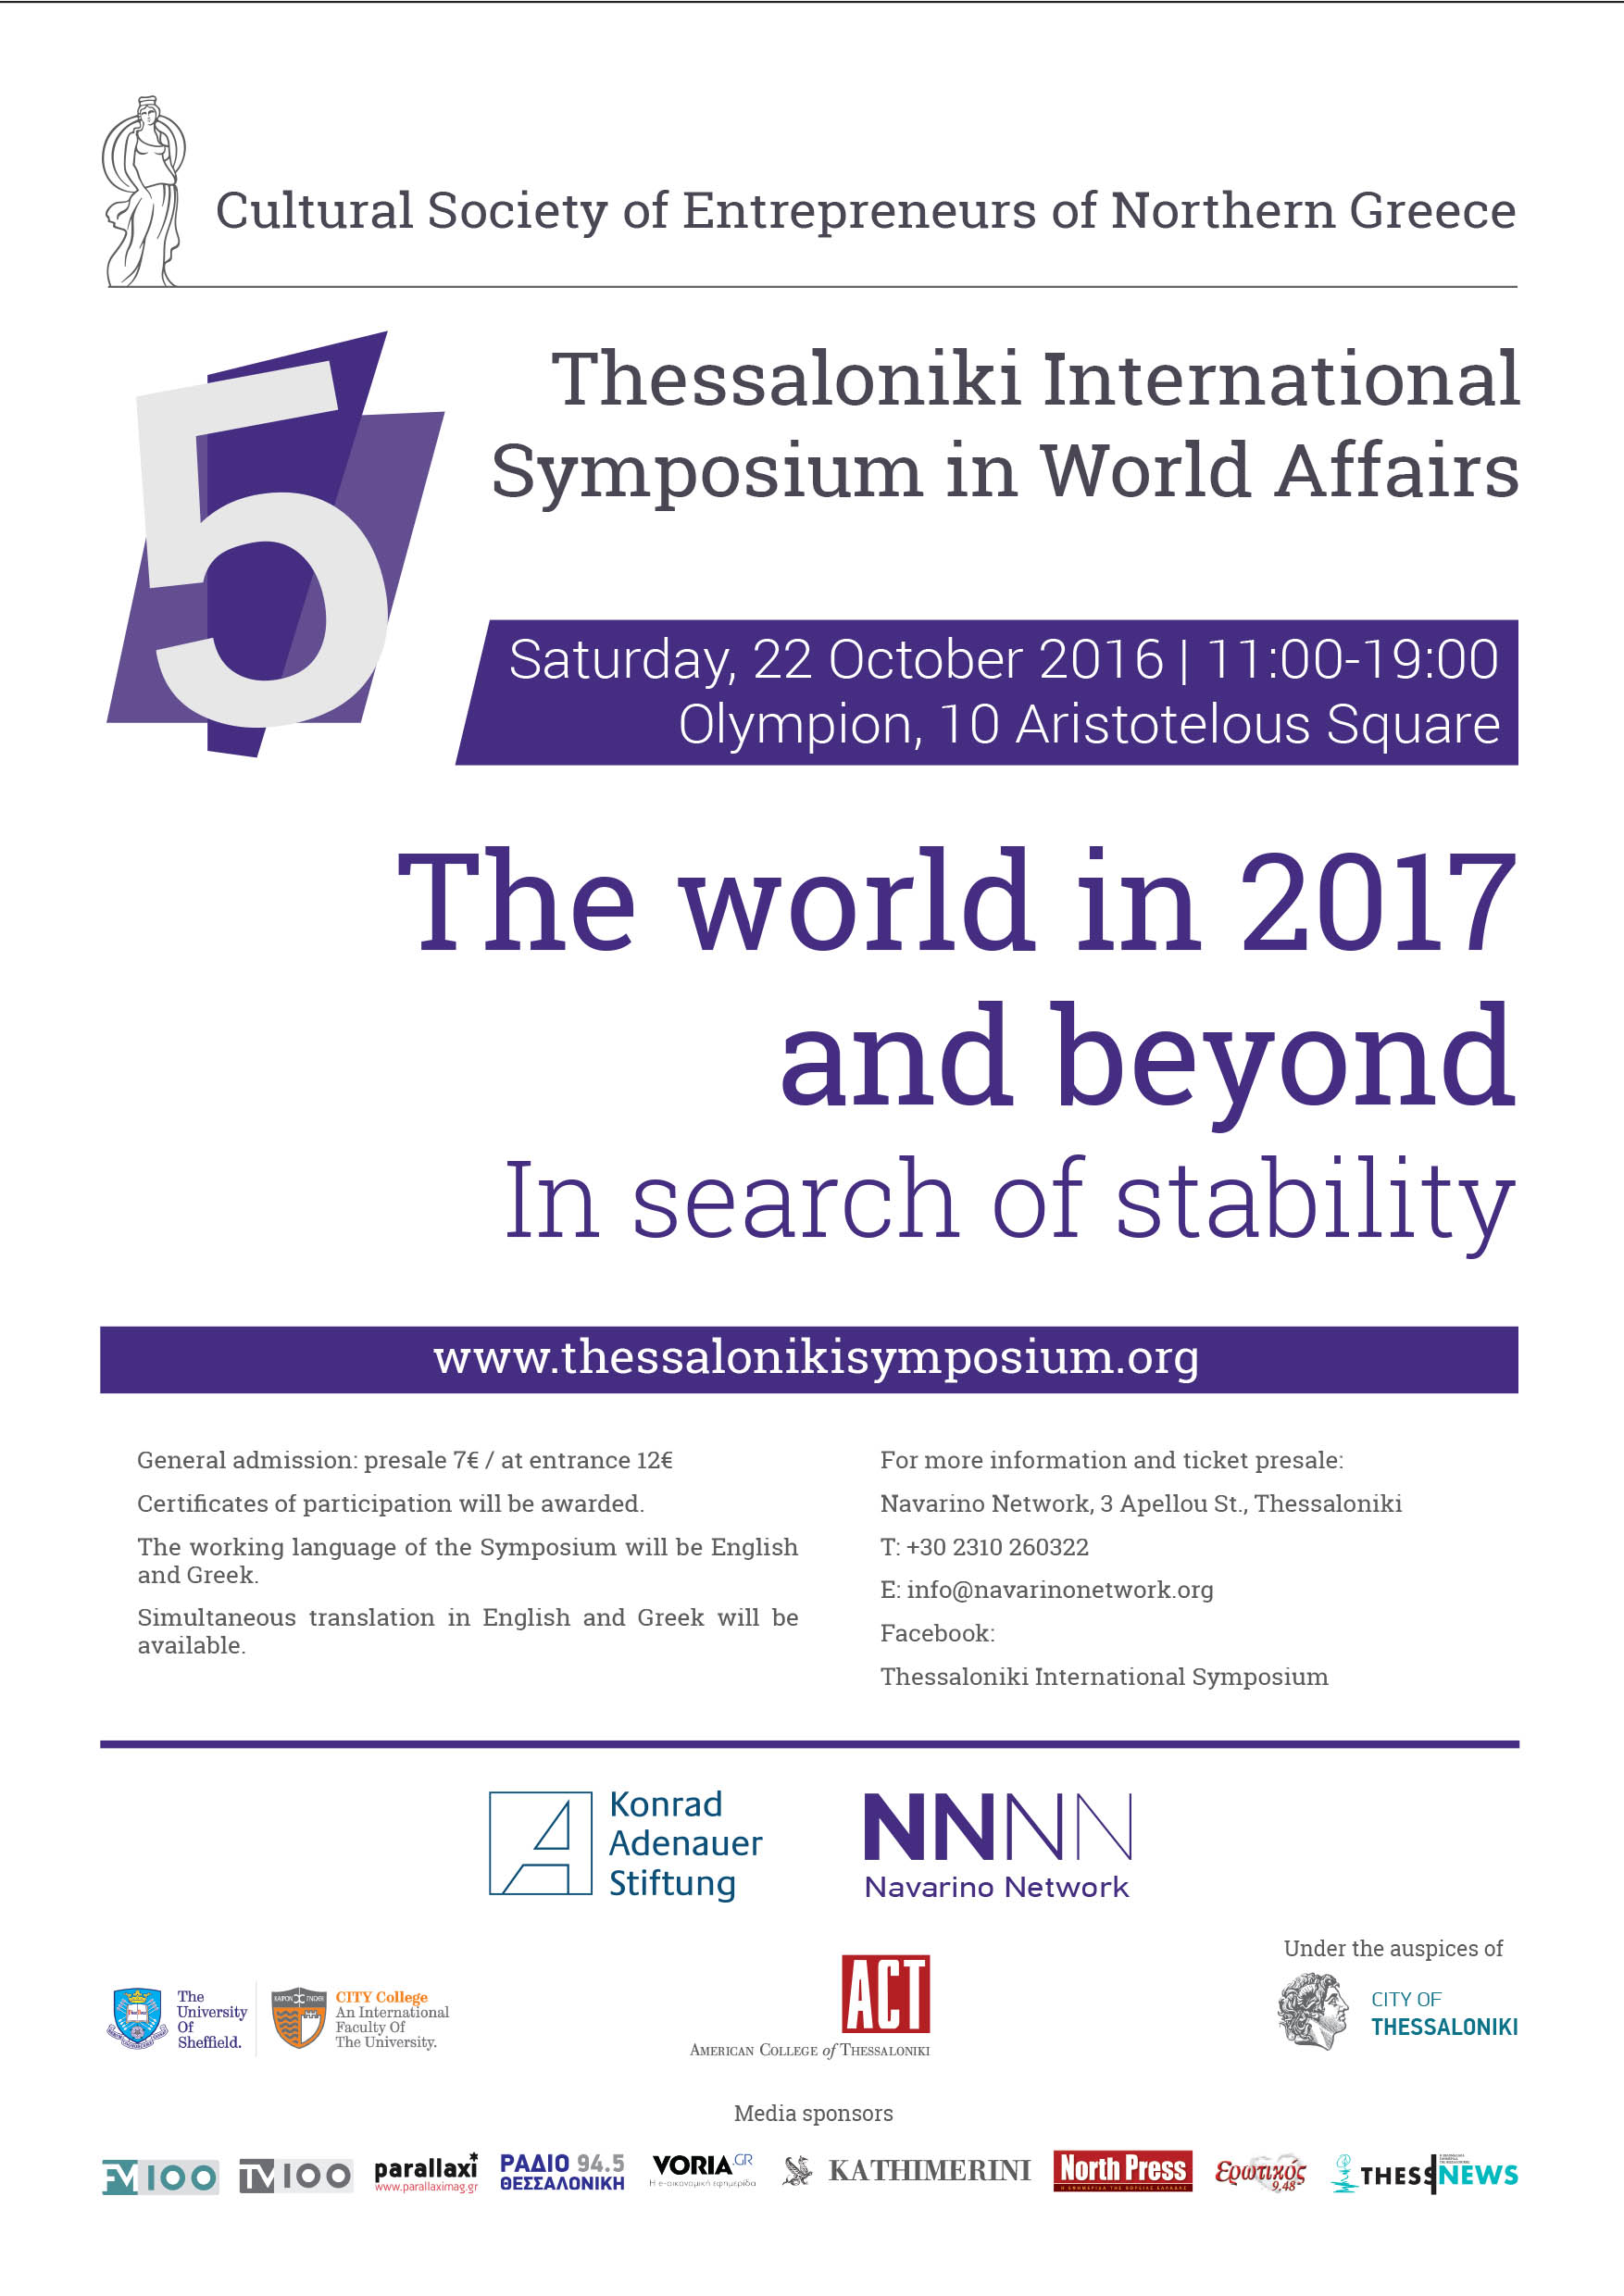 5th Thessaloniki International Symposium in World Affairs